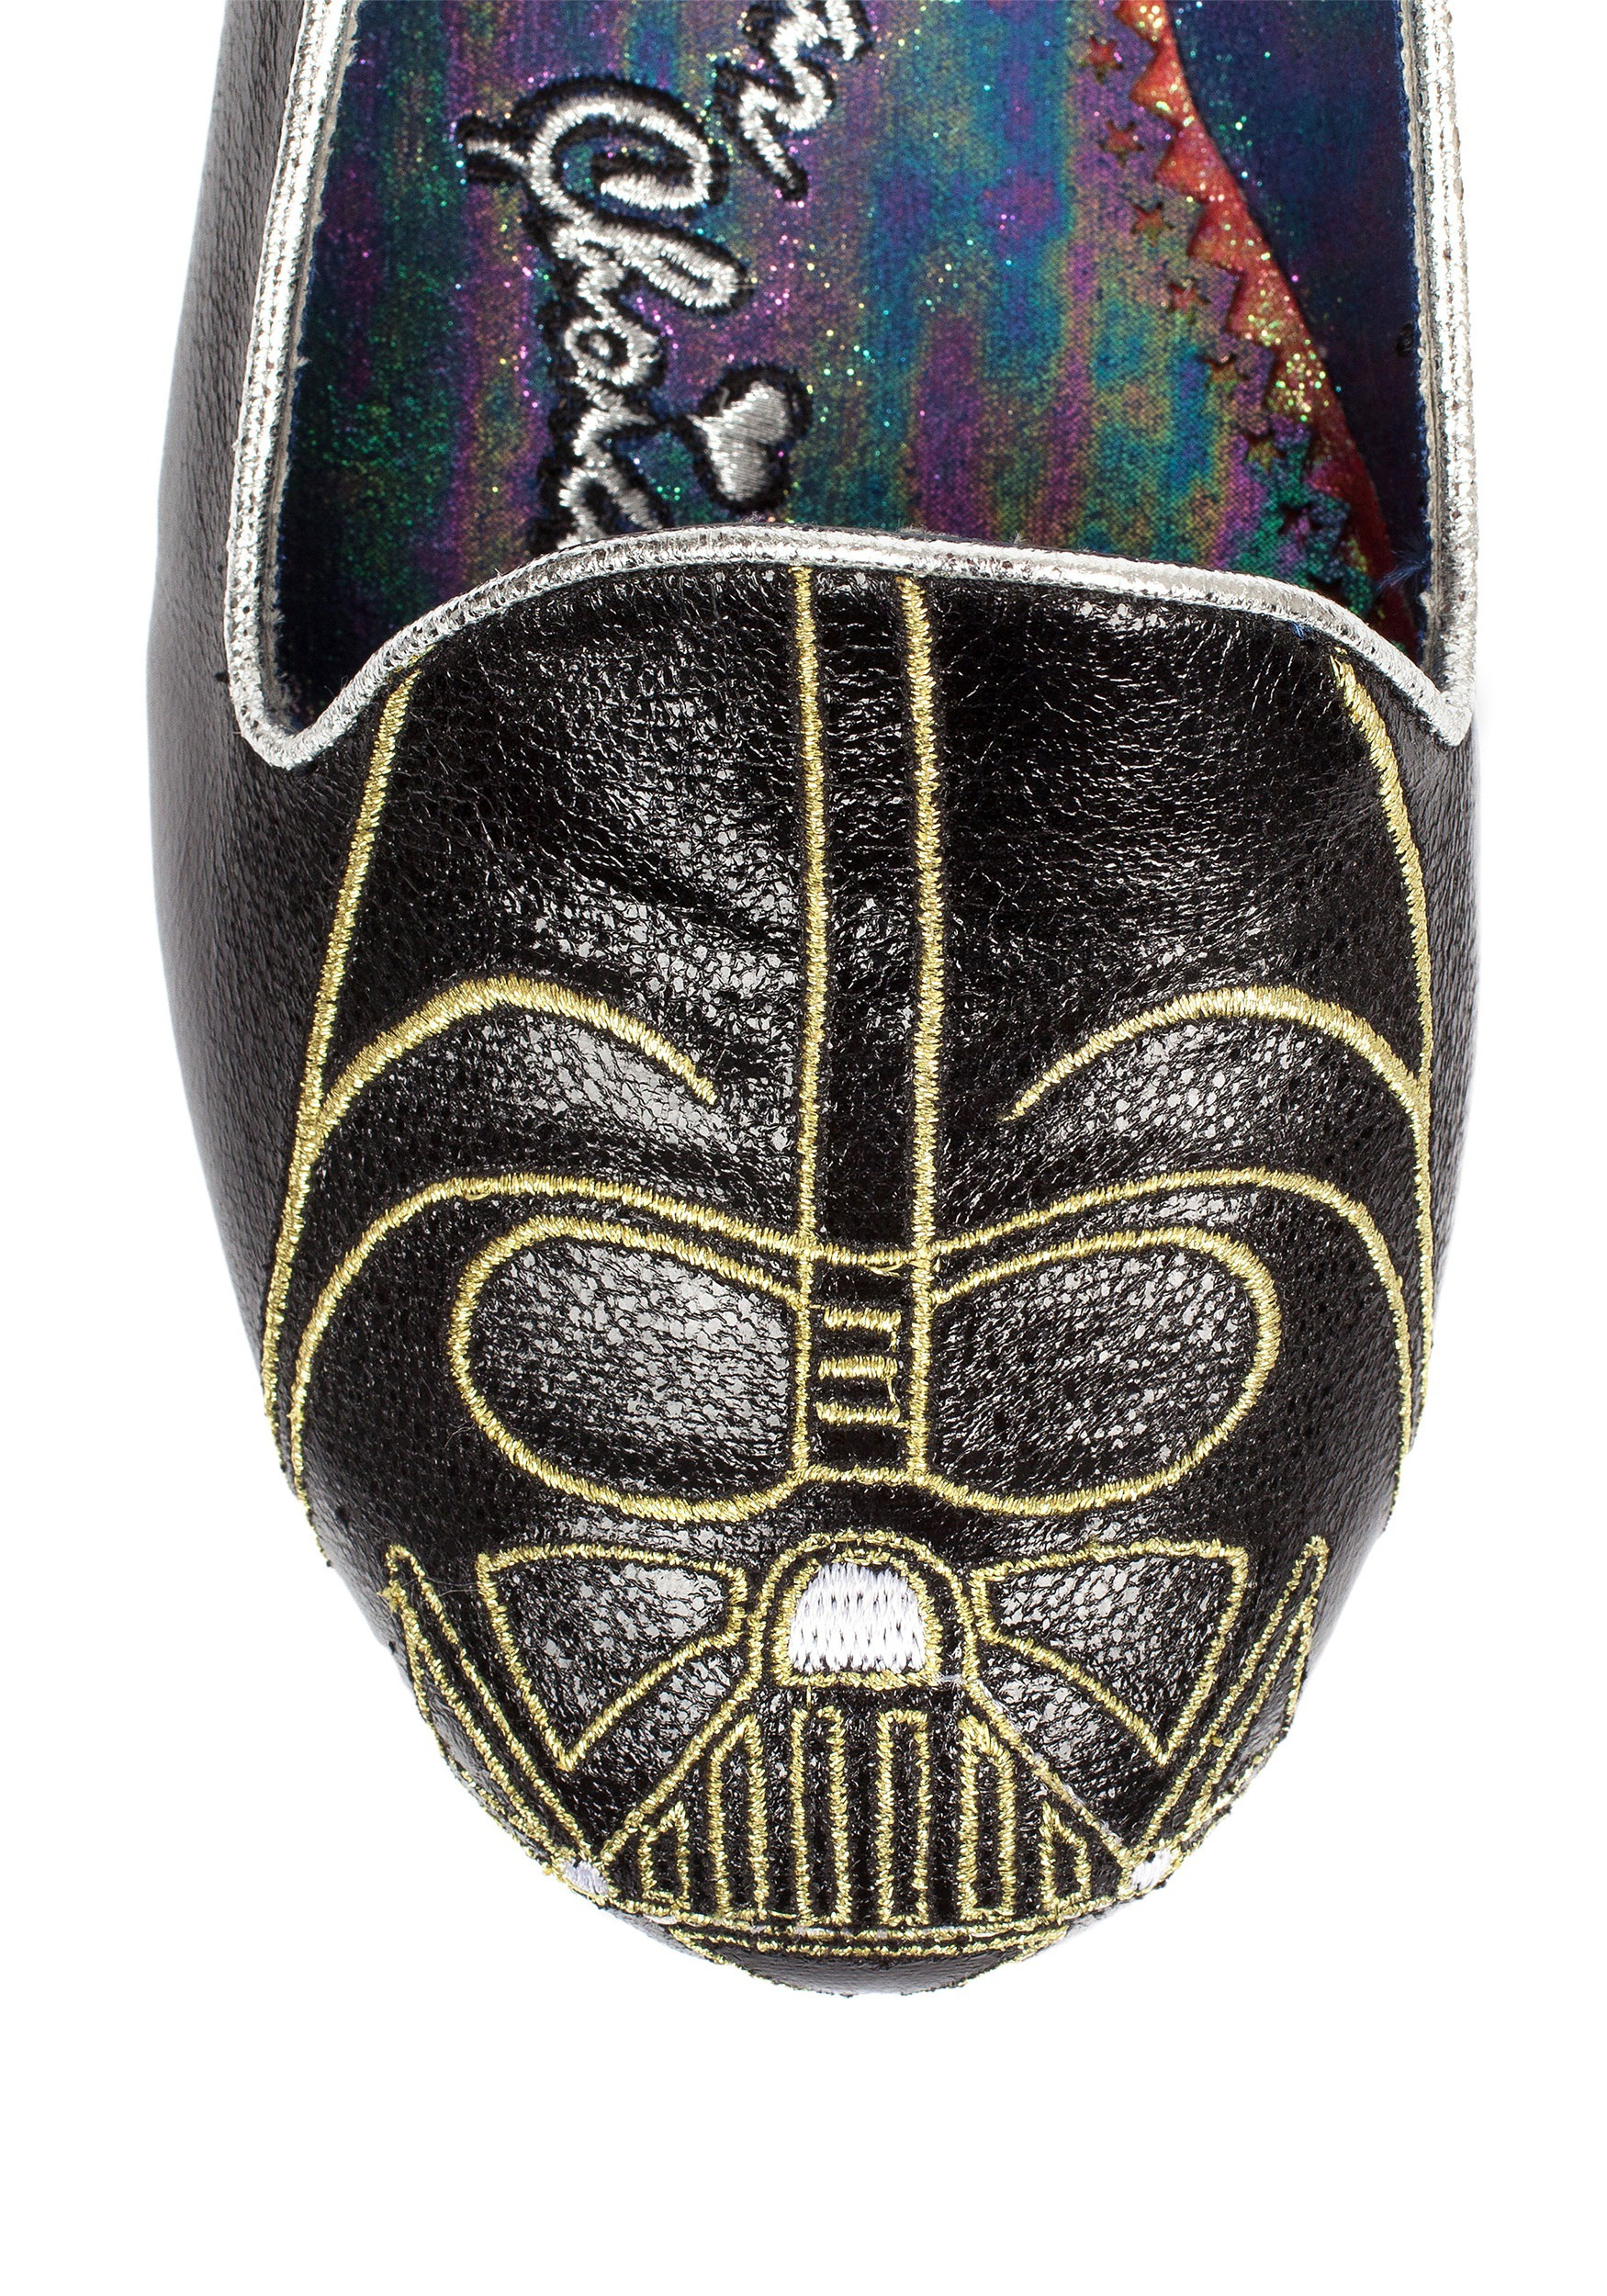 vader women Items delivered internationally may be subject to customs processing depending on the item's declared value.